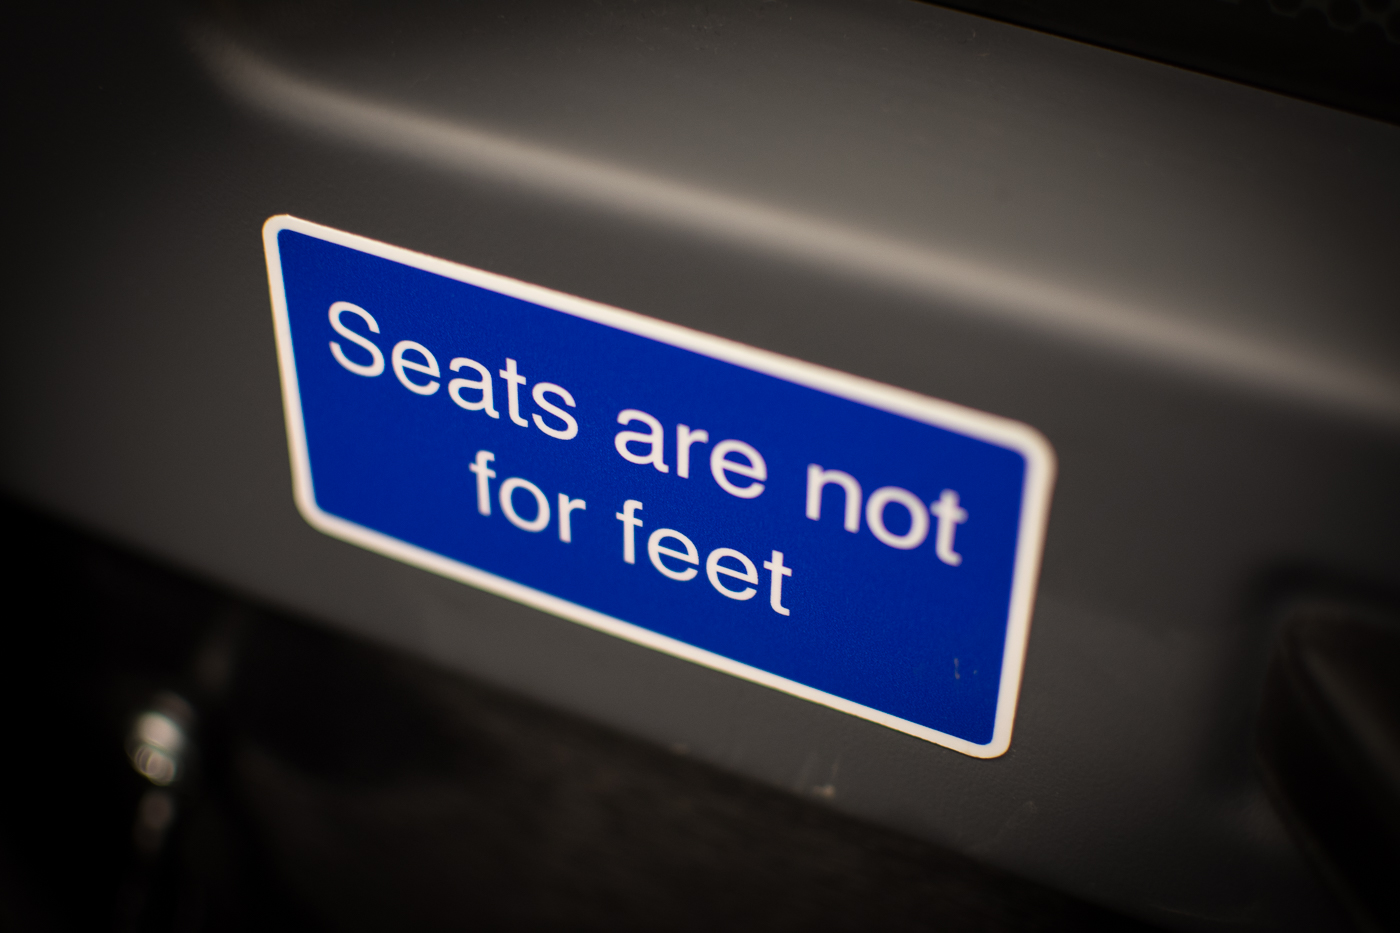 Seats are not for feet